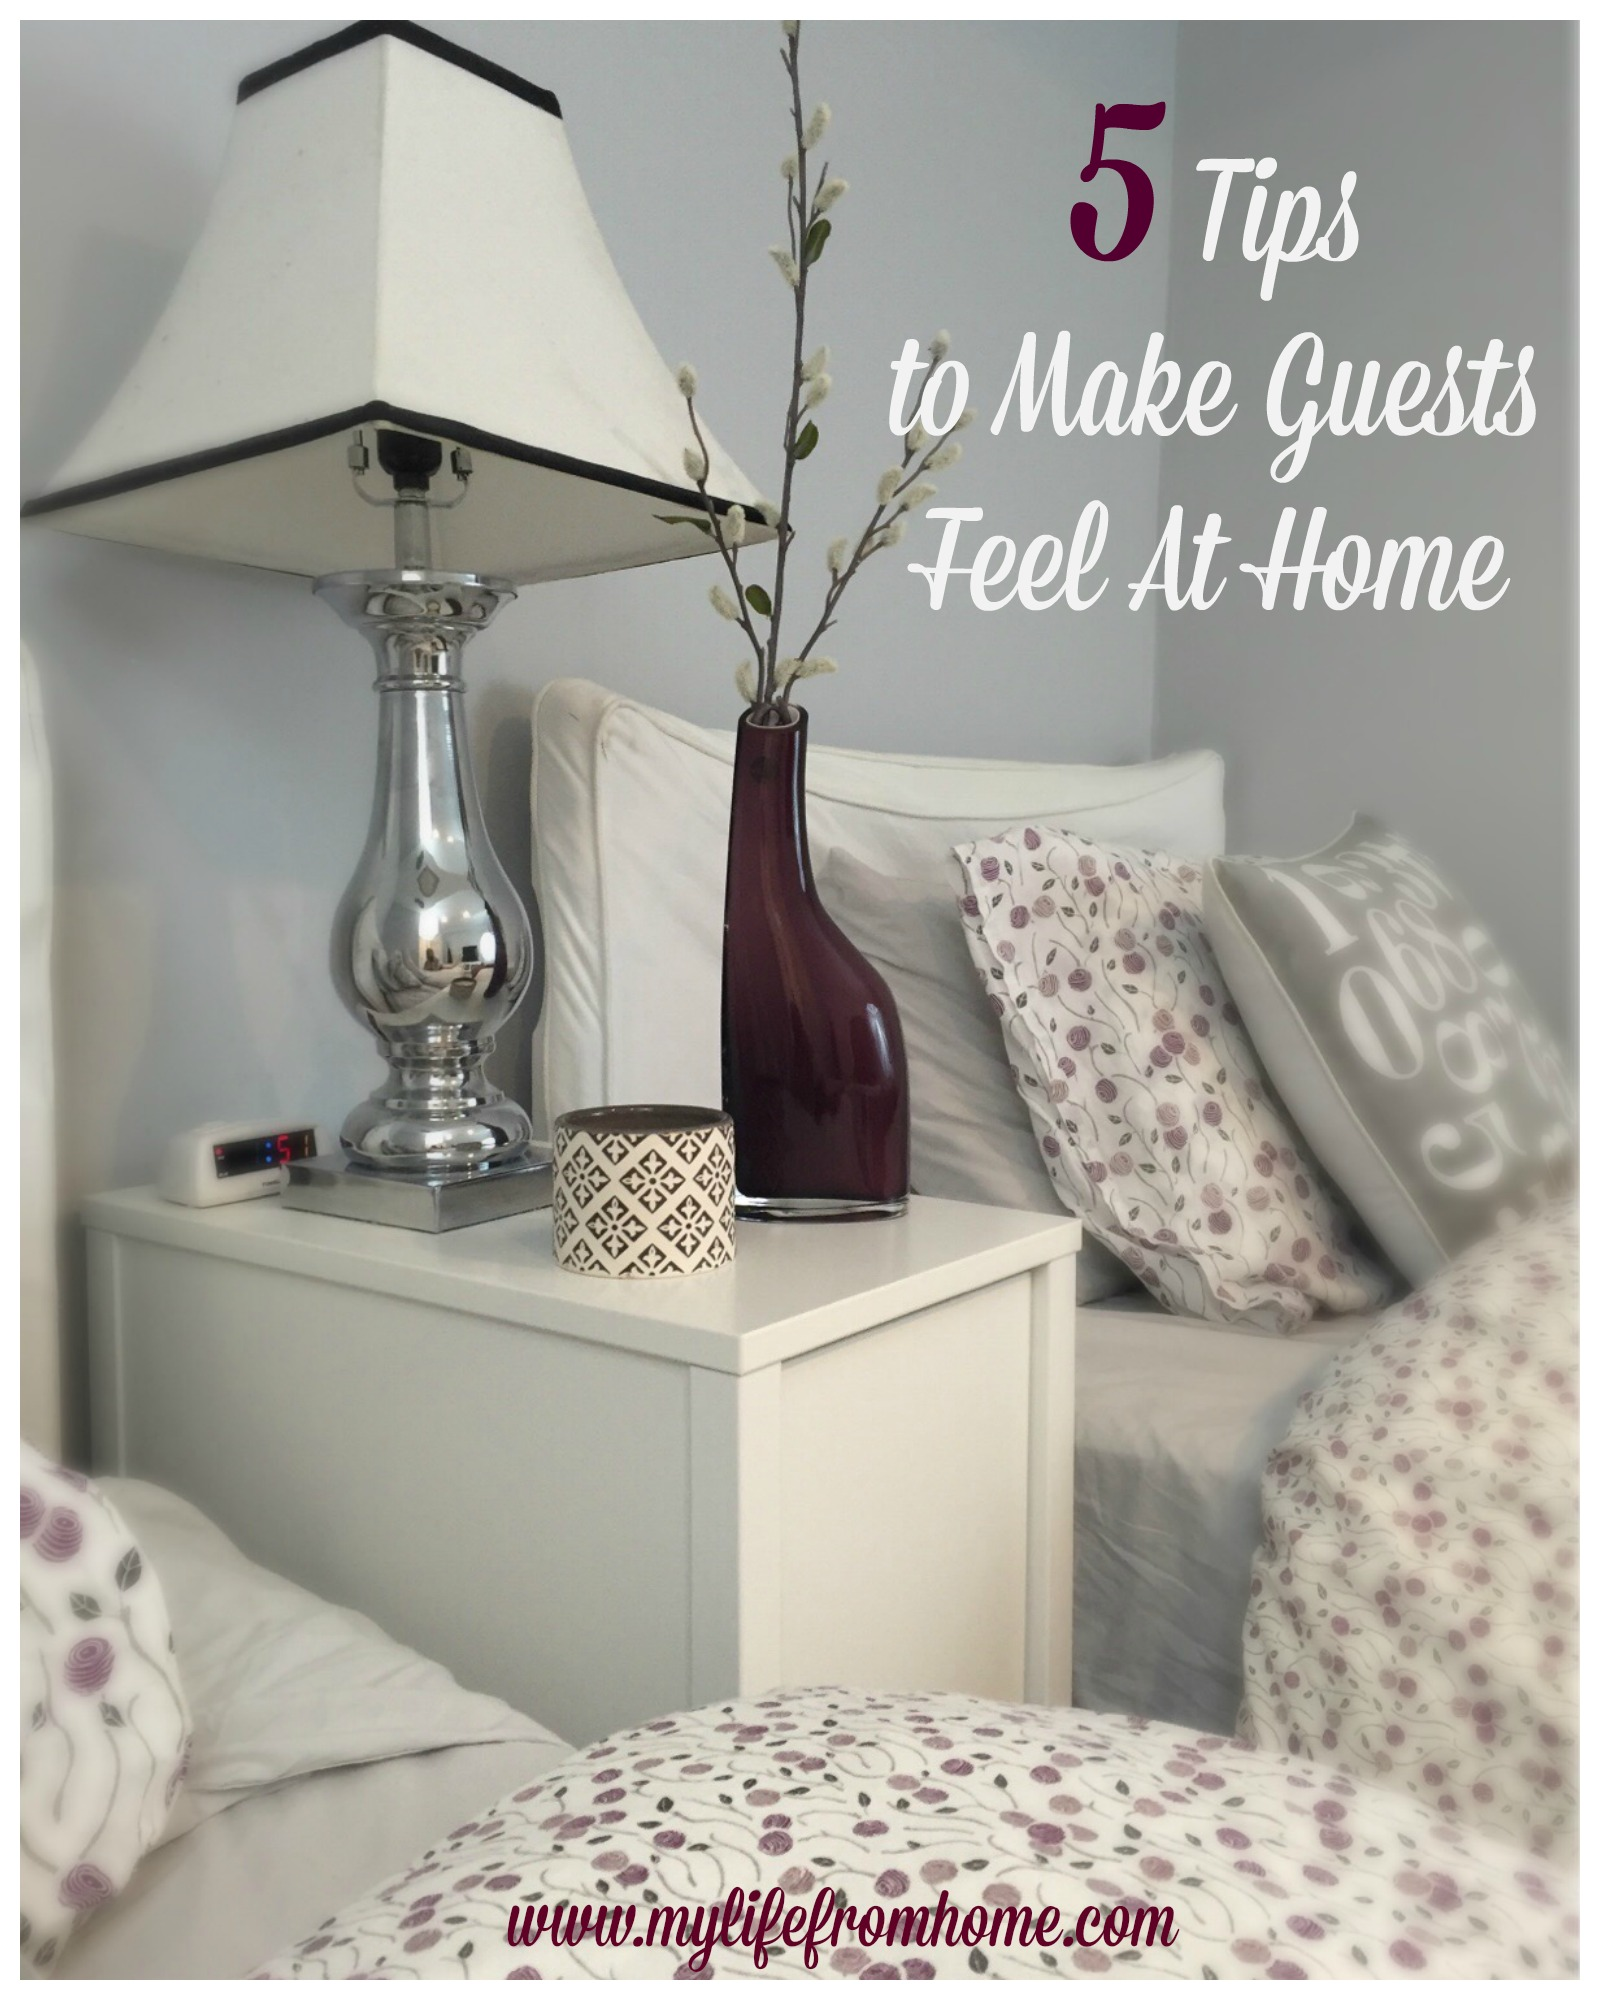 5 Tips to make guests feel at home by www.mylifefromhome.com